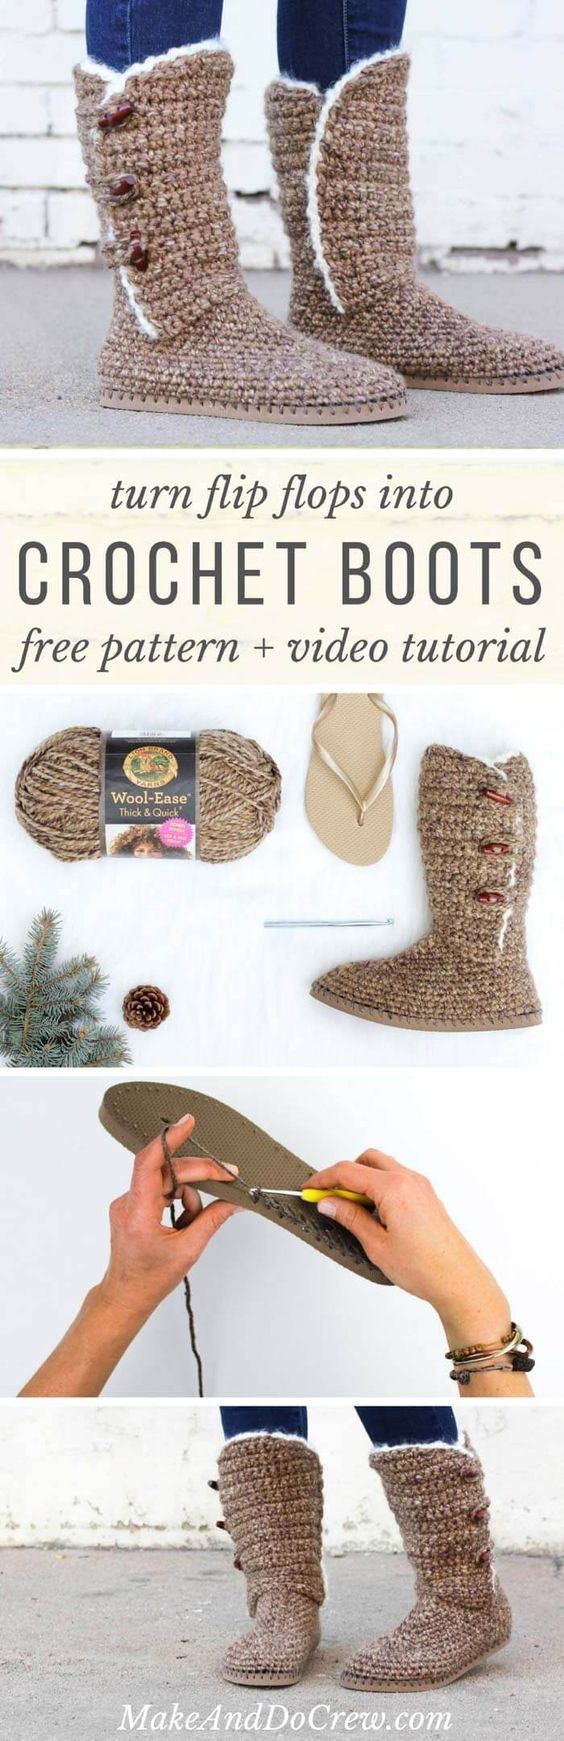 Crochet Boots With Flip Flop Soles - Free Pattern + Video | All ...